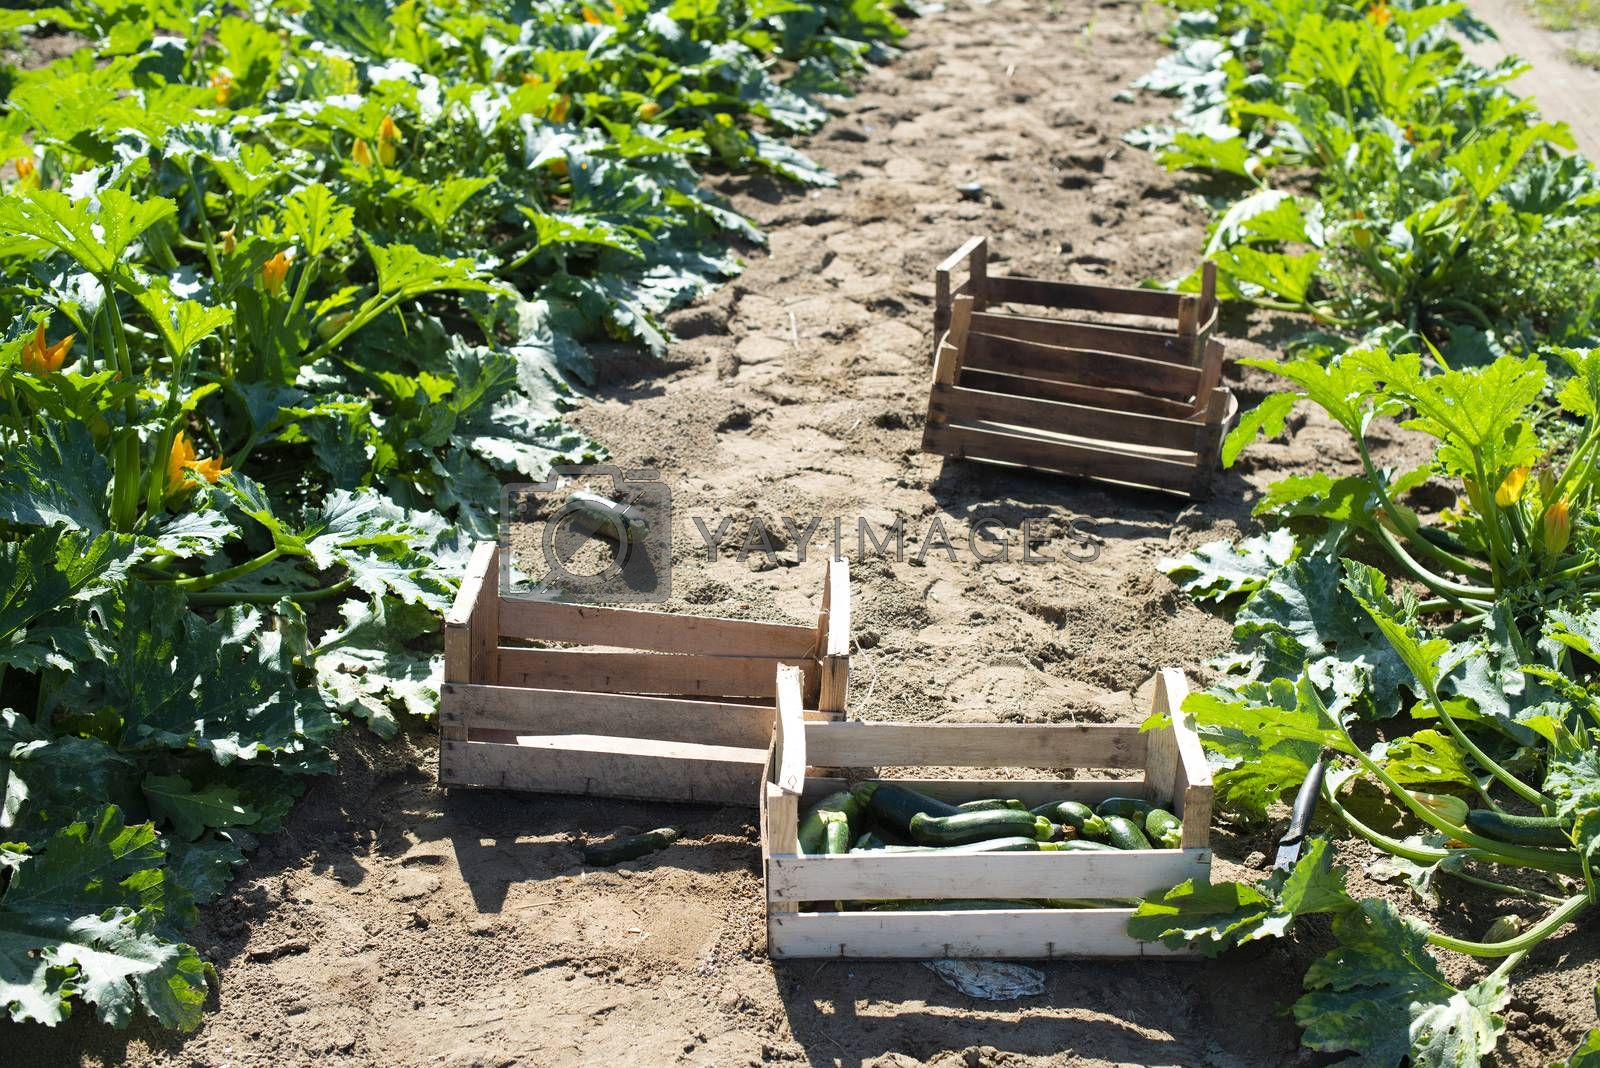 Picking zucchini in industrial farm. Wooden crates with zucchini on the field. Sunny day.